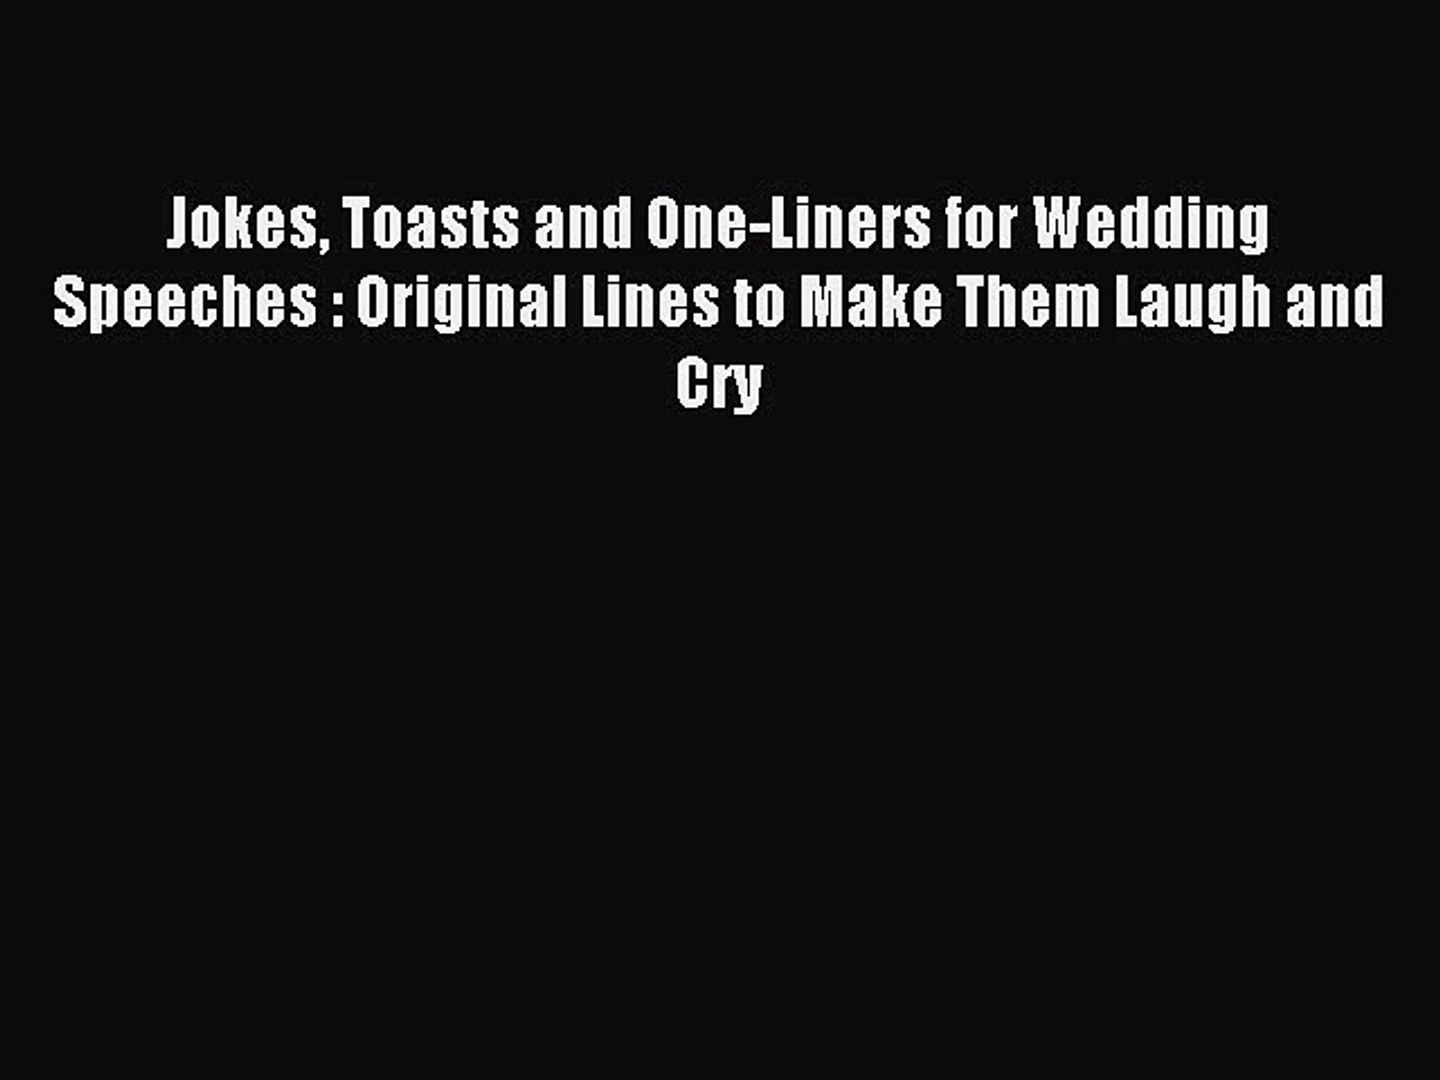 Read Jokes Toasts and One-Liners for Wedding Speeches : Original Lines to Make Them Laugh and